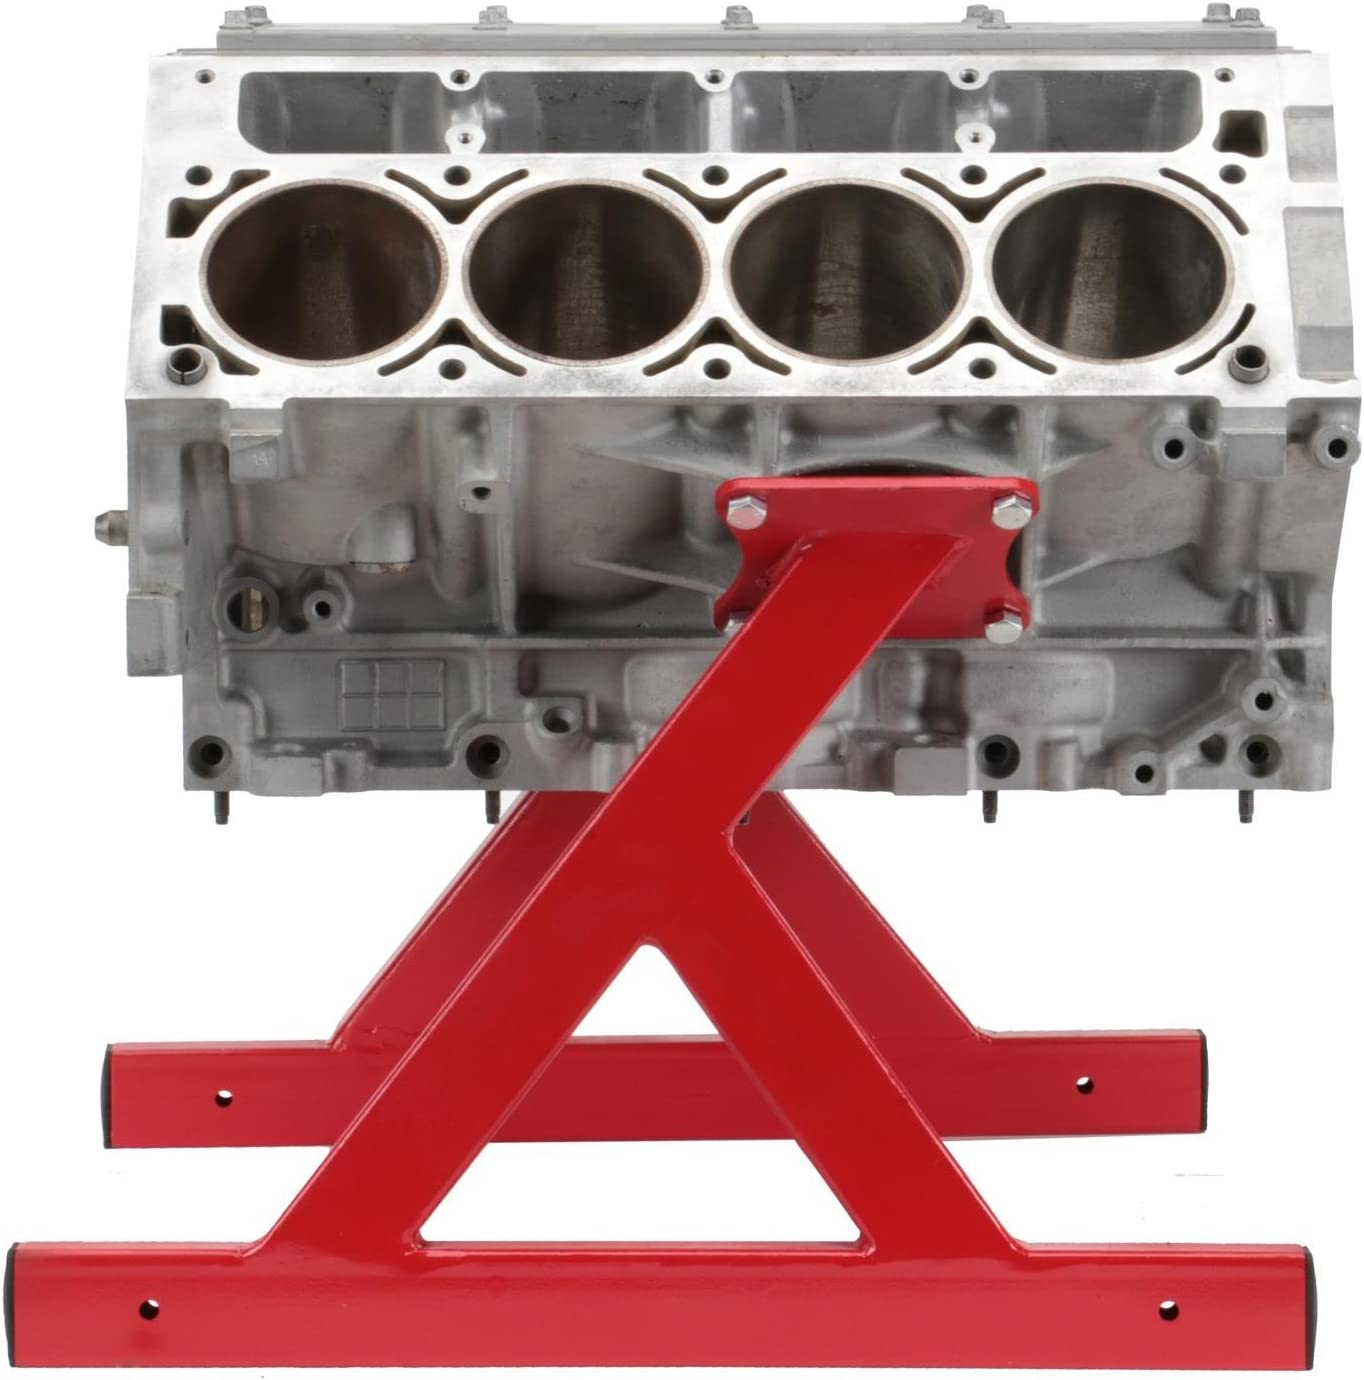 Chevy V8 LSx Engine Storage Stand